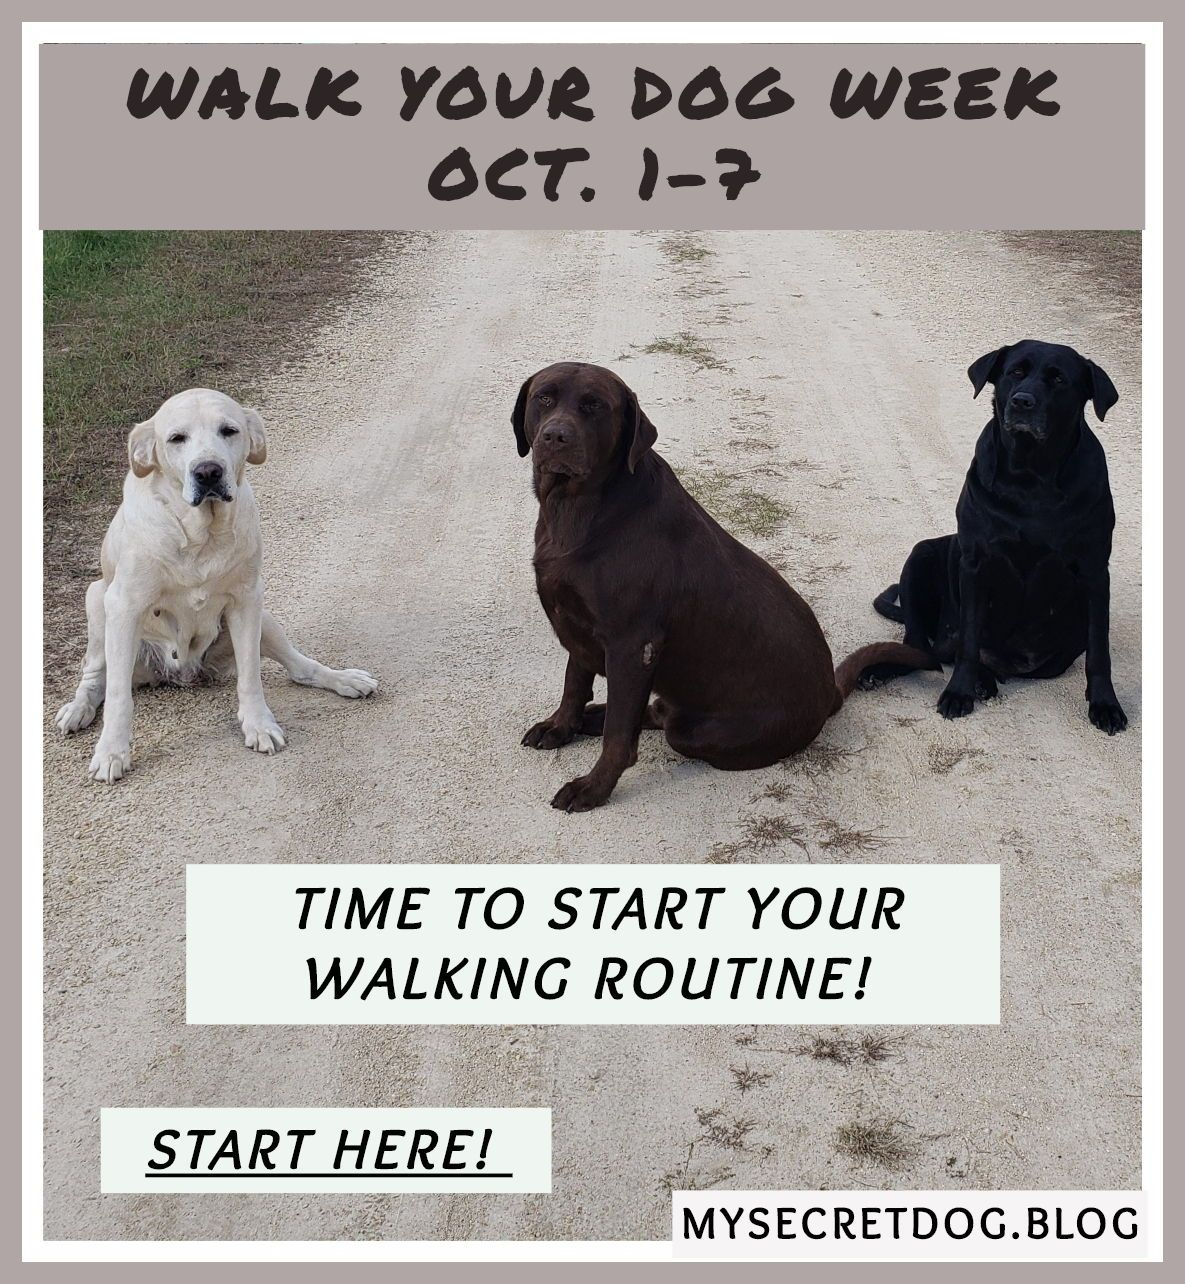 Dog Walking For Just 10 Minutes The Benefits For You And Your Dog